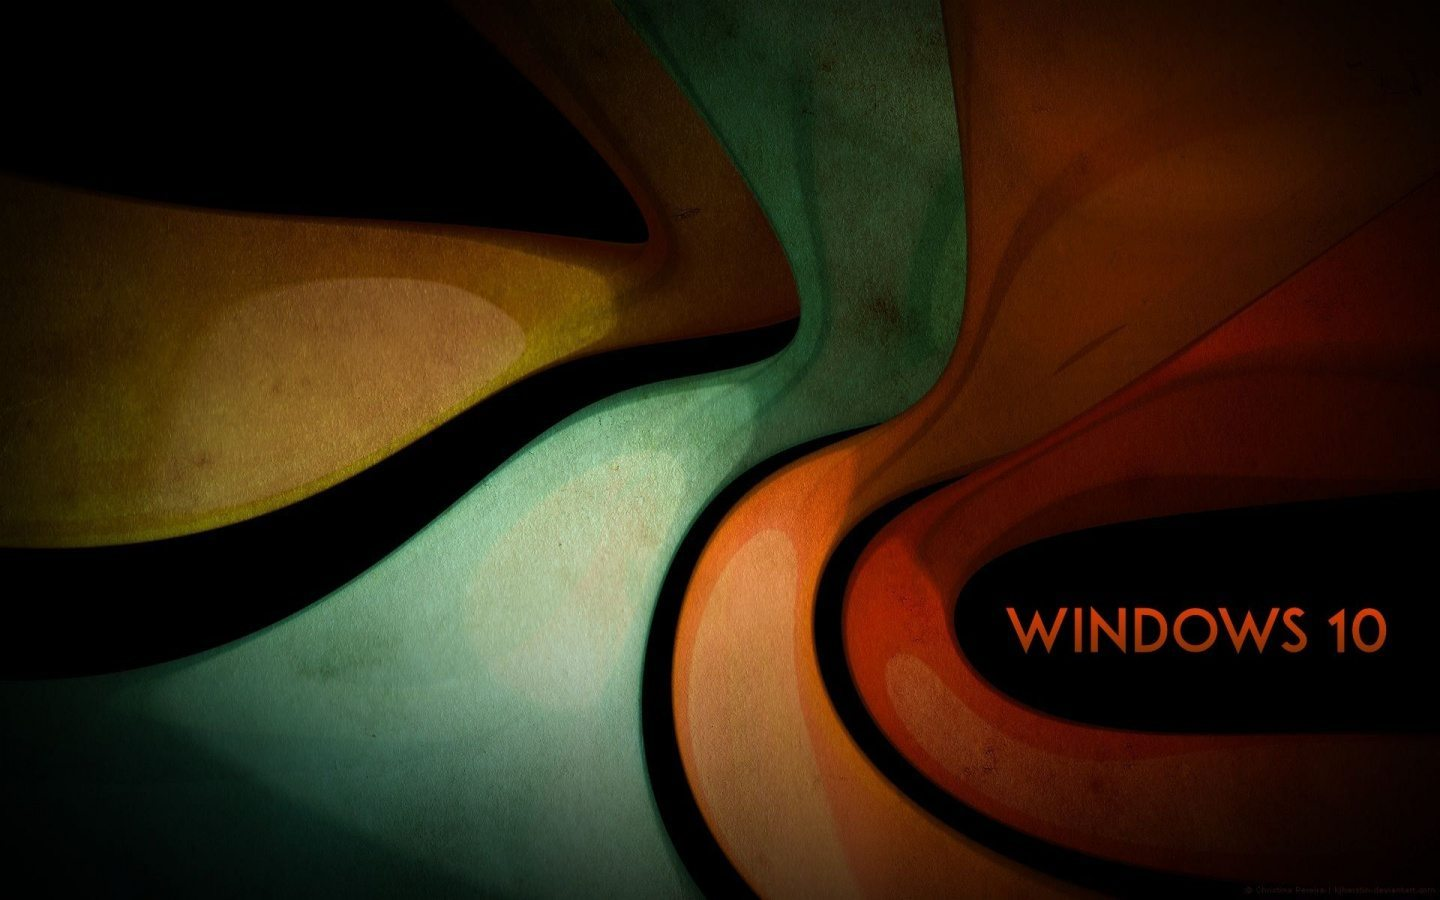 windows-10-art-desktop-background